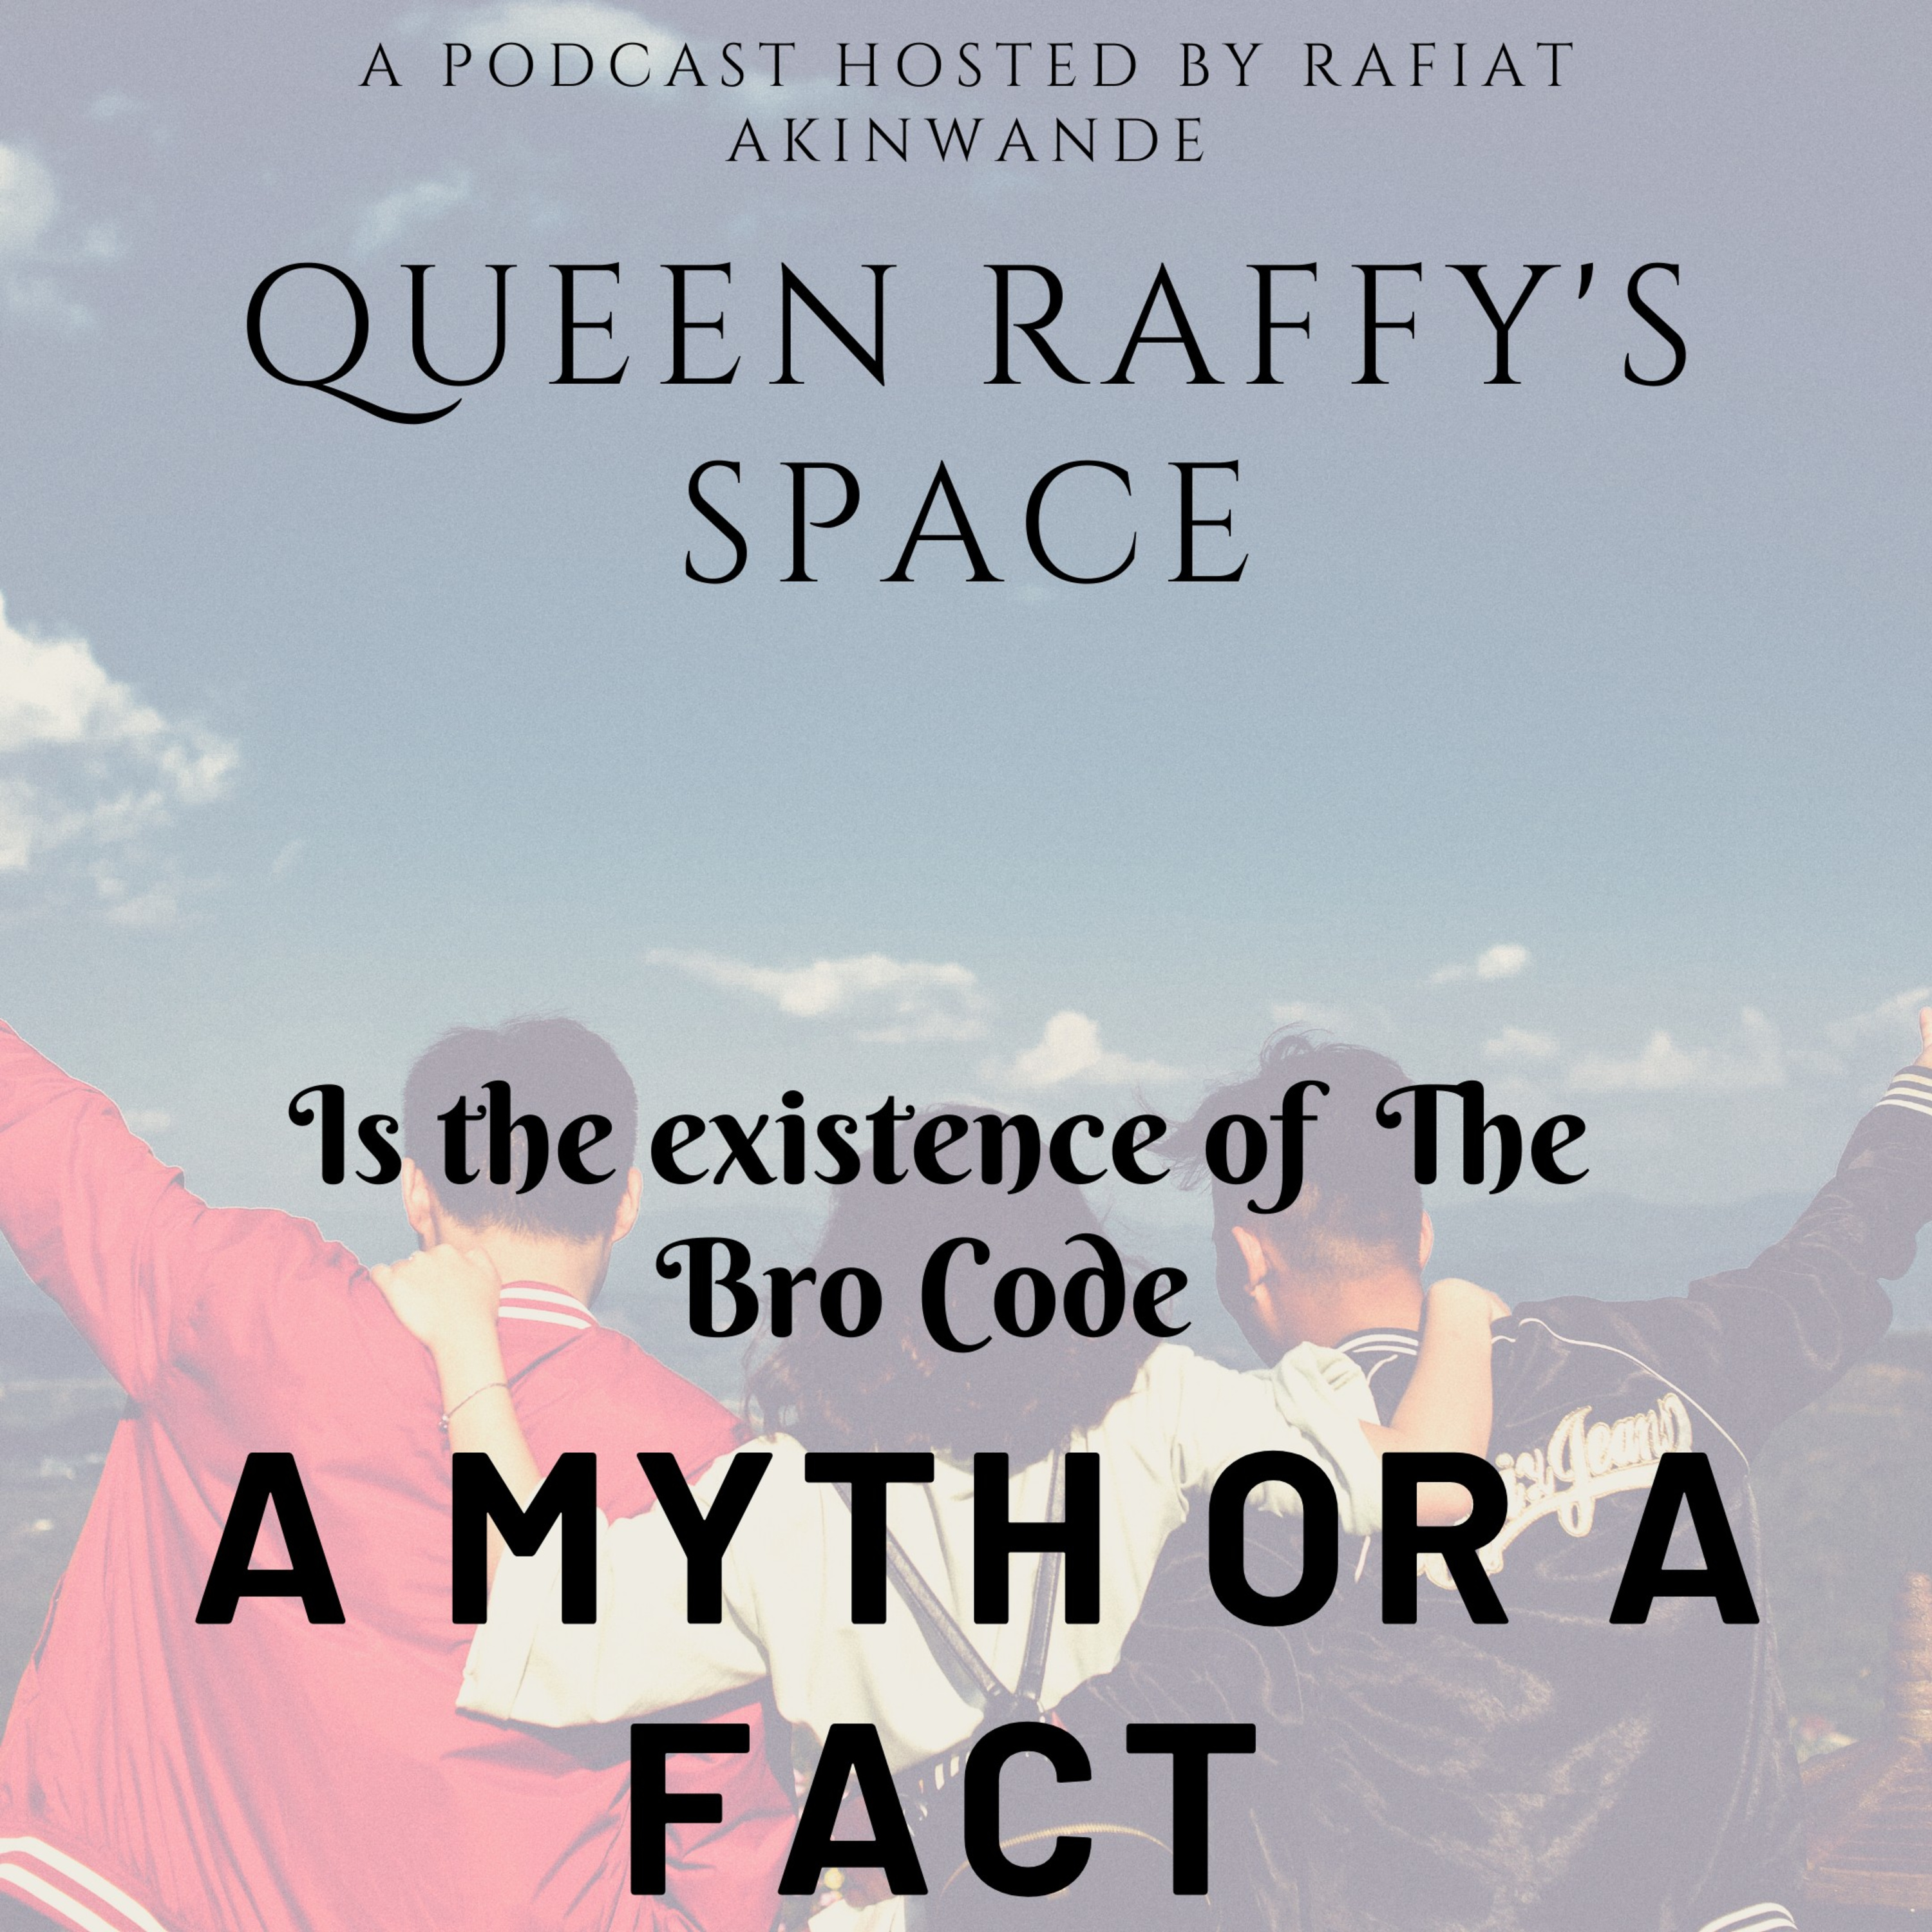 Queen Raffy's Space on Jamit